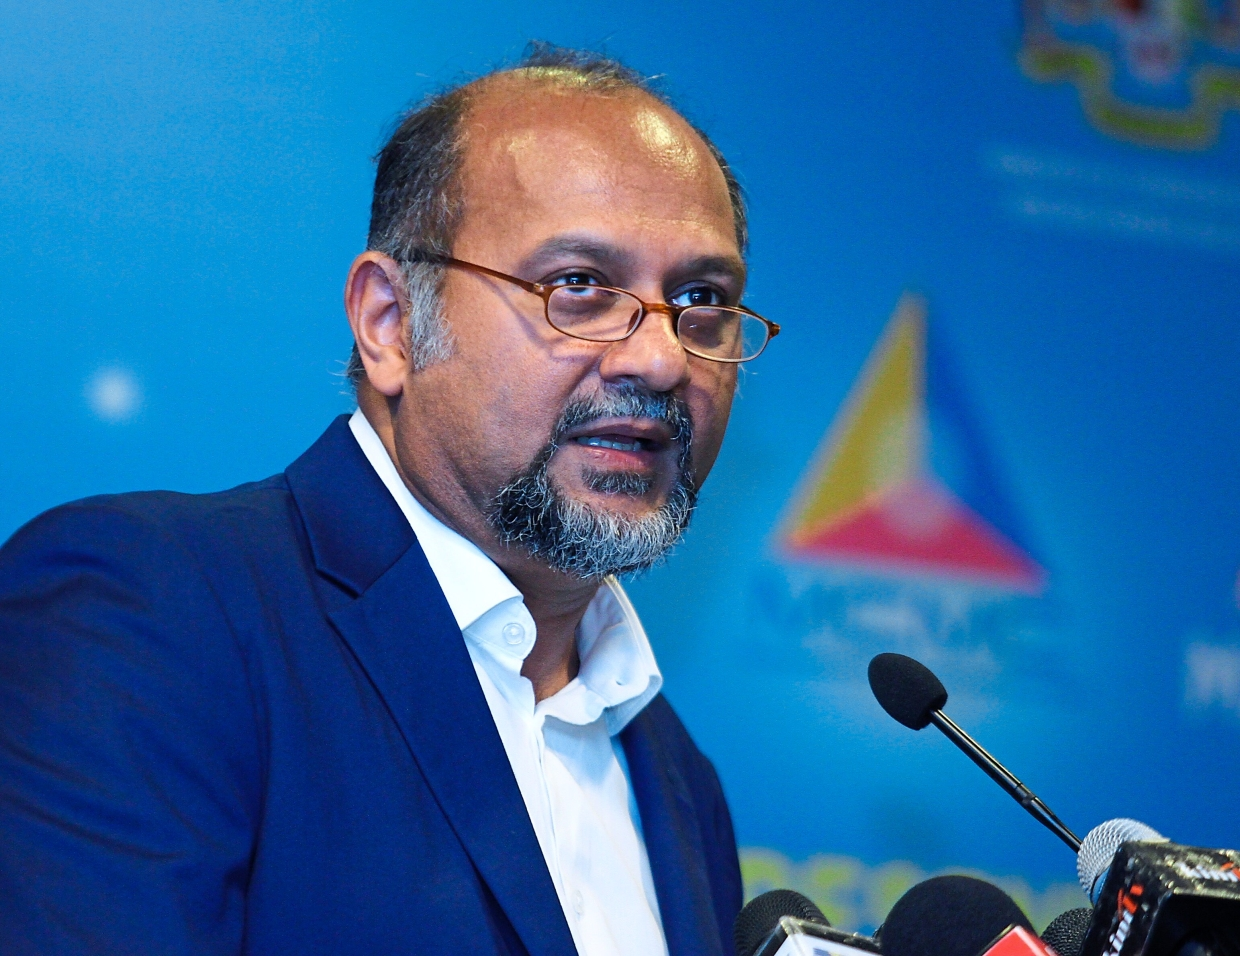 Gobind spoke on the need to test the safety of 5G, after receiving the National 5G task force mid-term report from the MCMC. — MOHD SAHAR MISNI/The Star